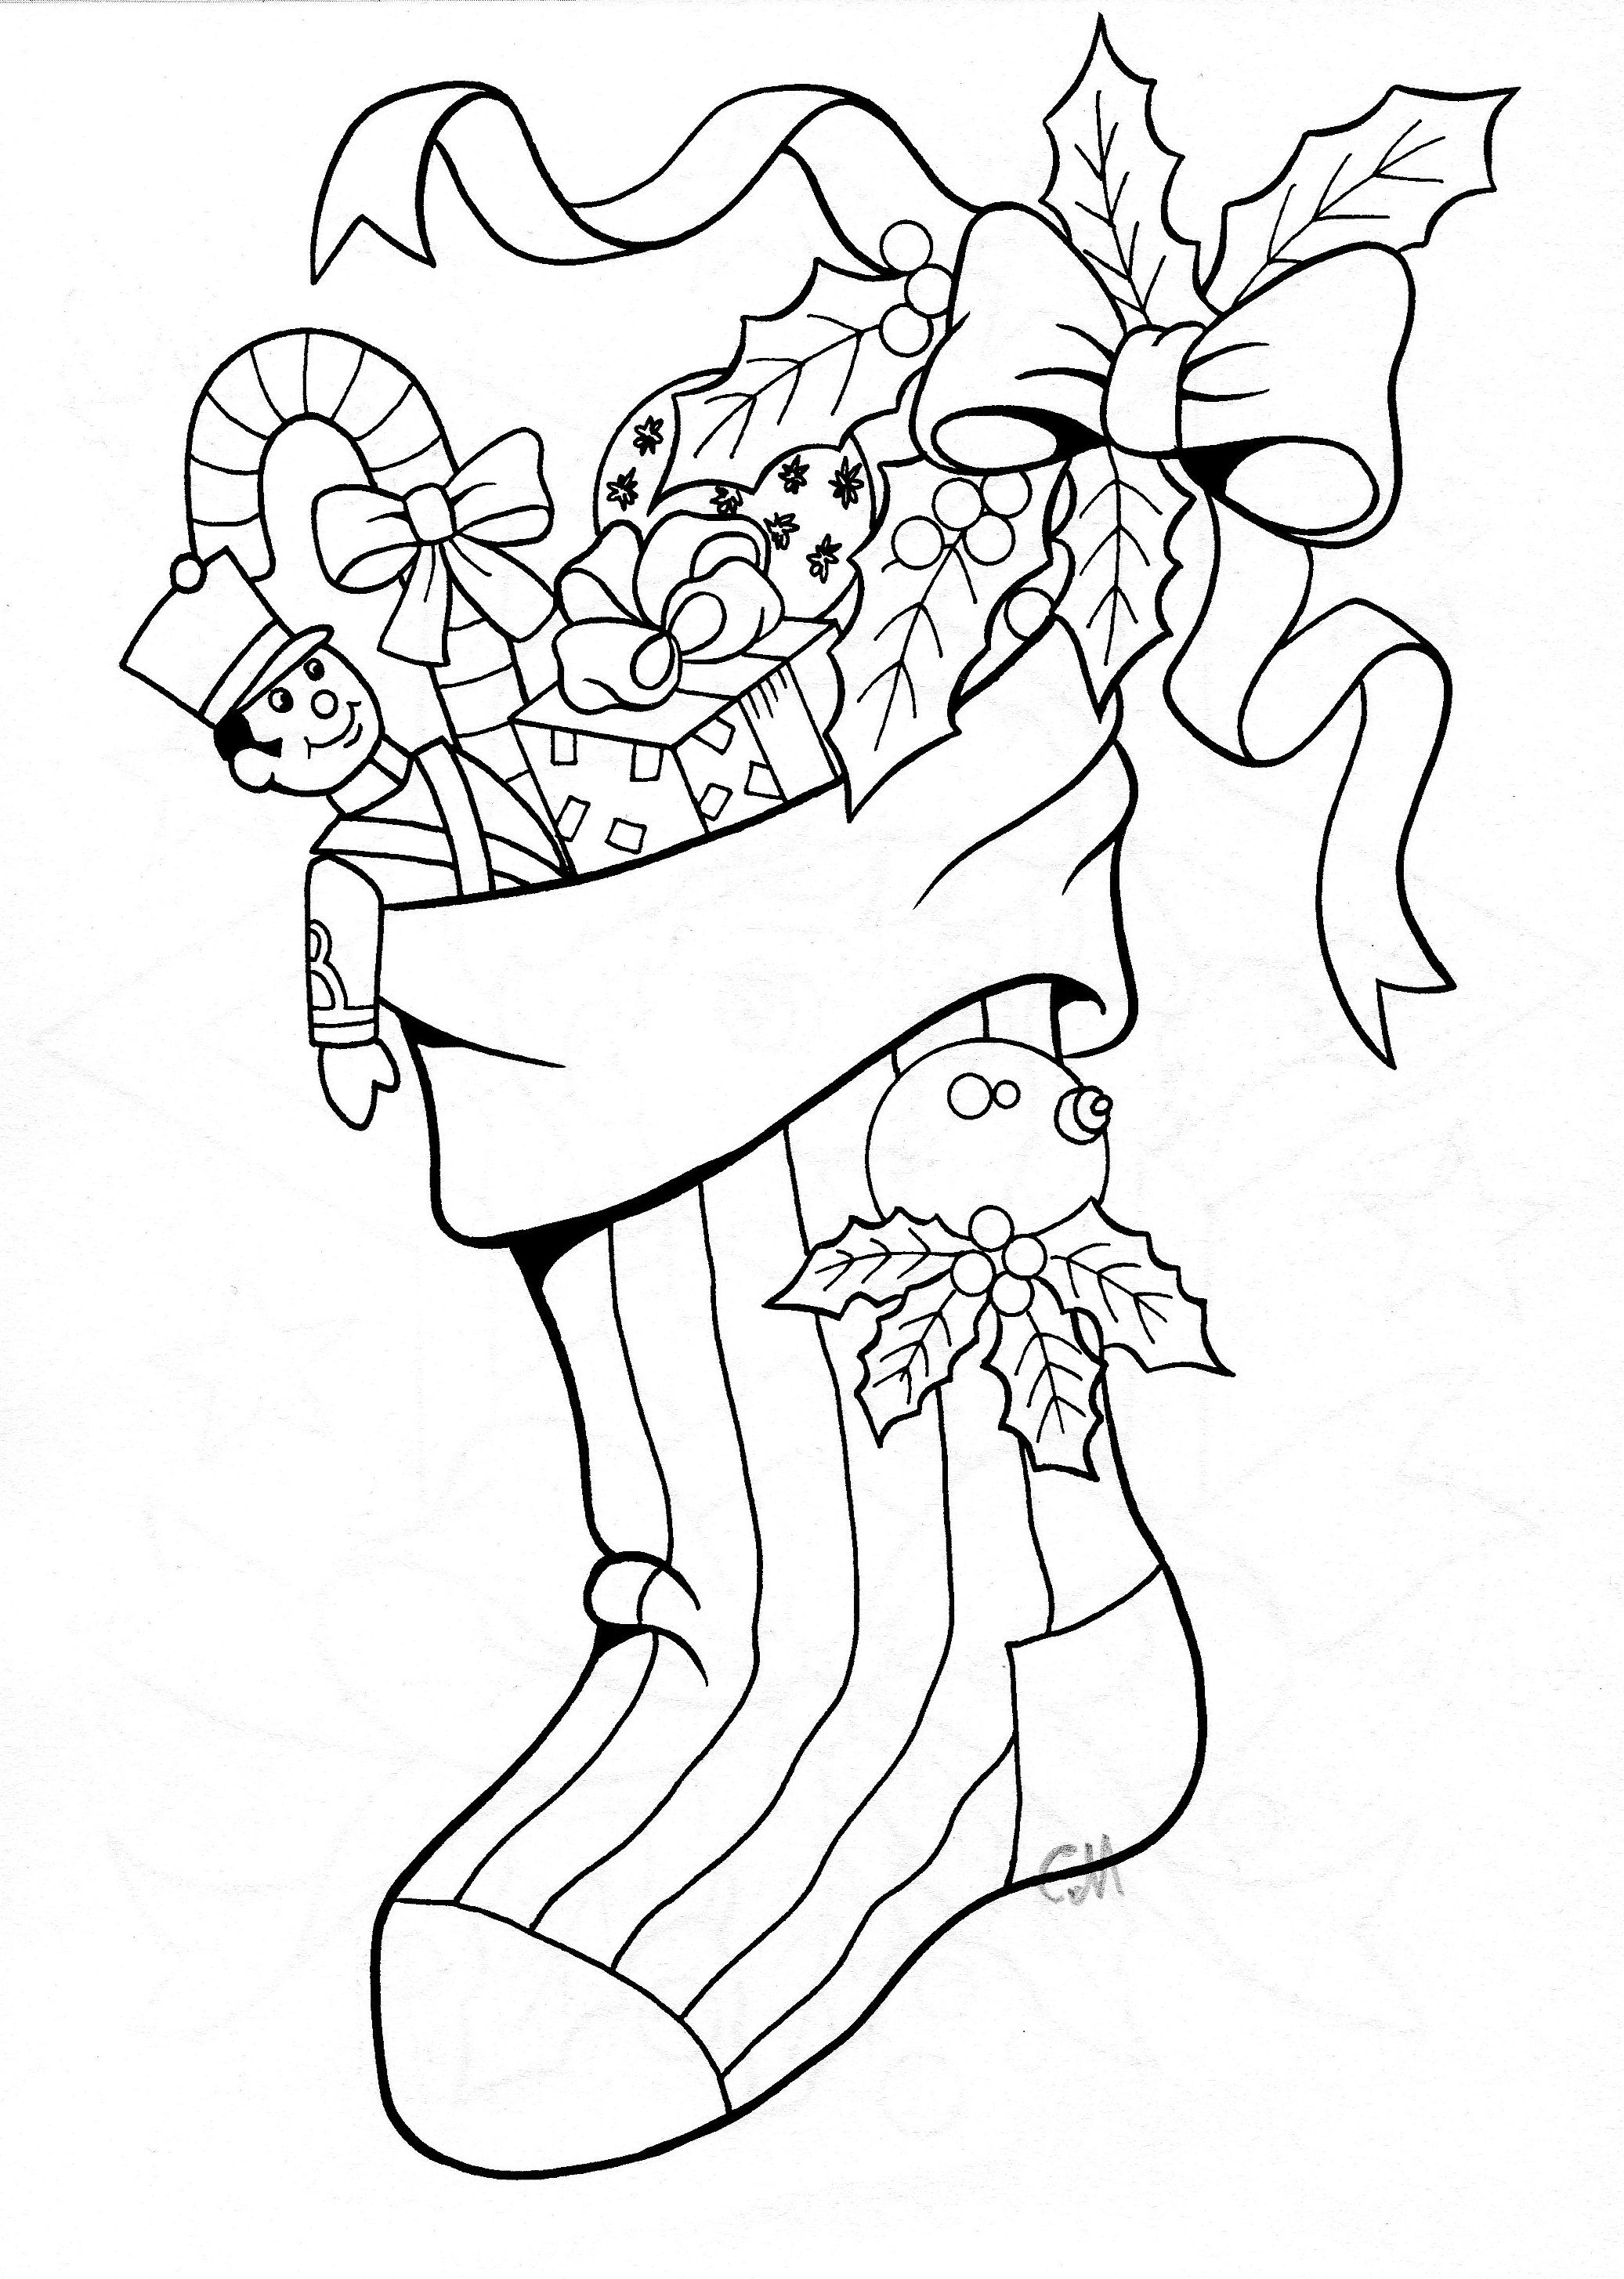 stocking 2 (With images) Coloring pages, Christmas